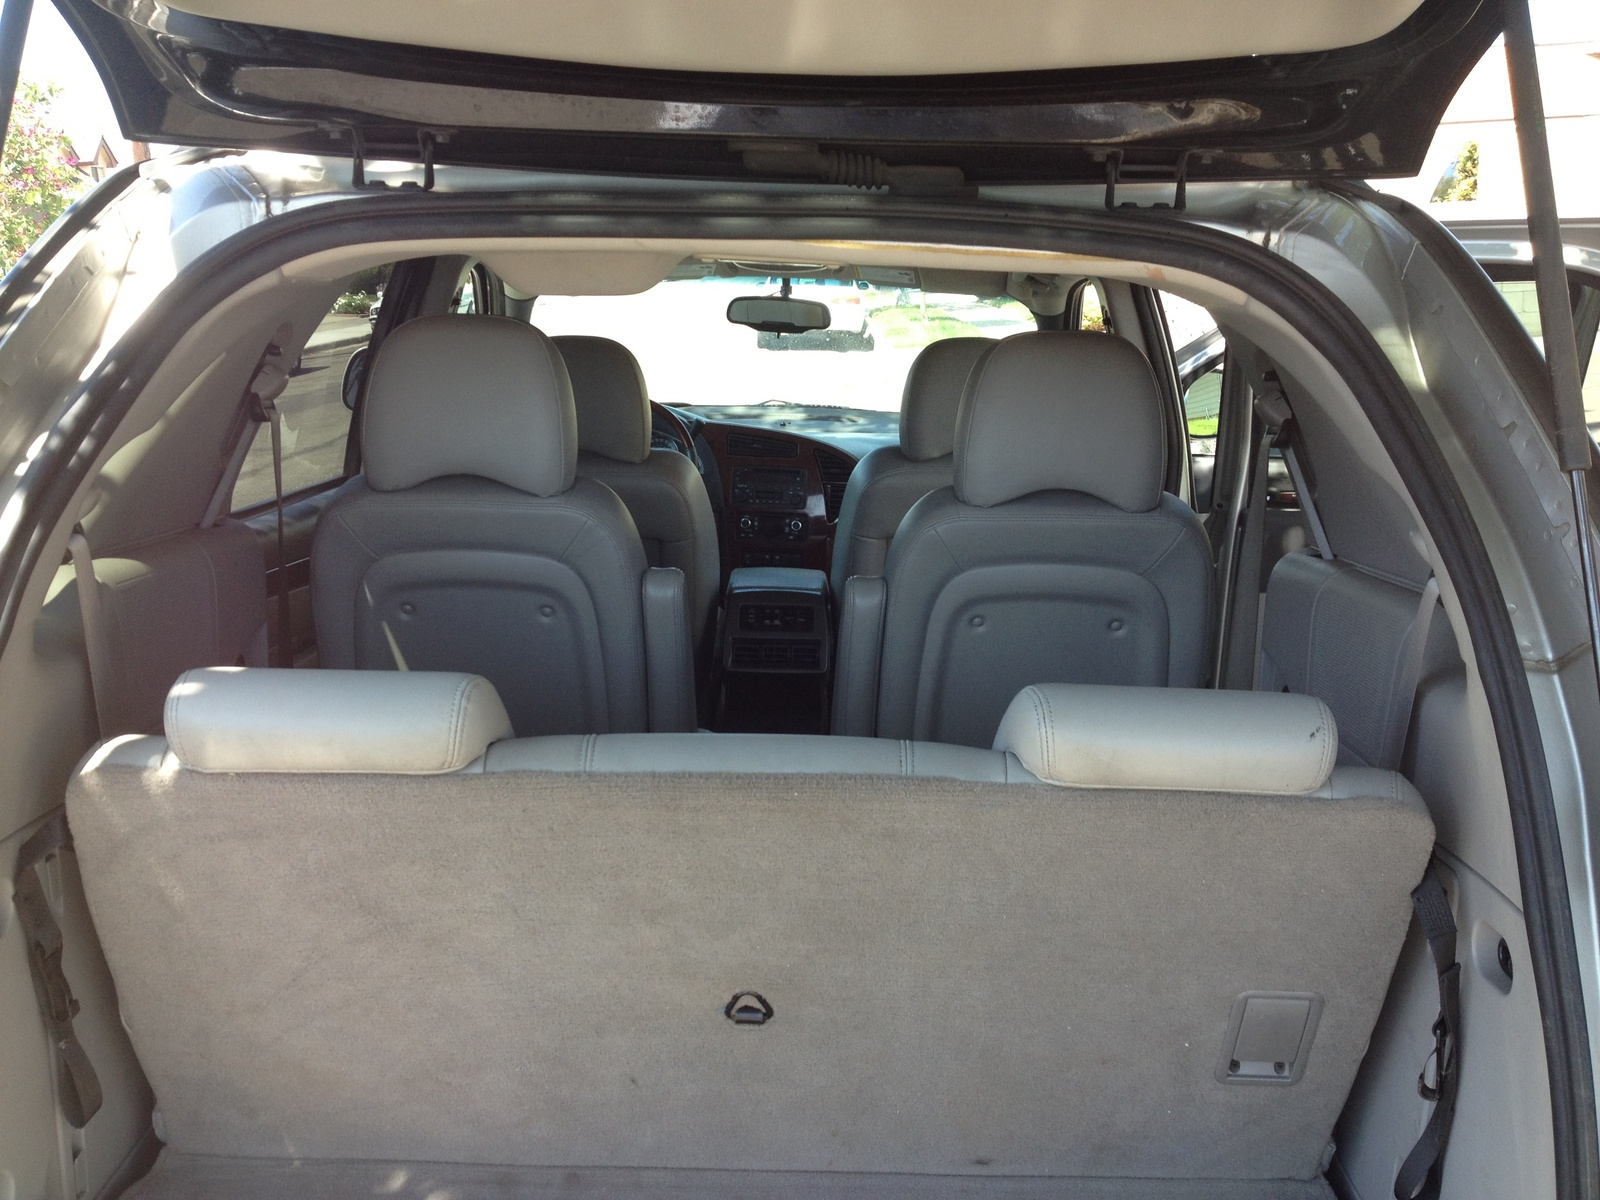 Buick Rendezvous Cxl Pic on 2007 Buick Lacrosse Rate